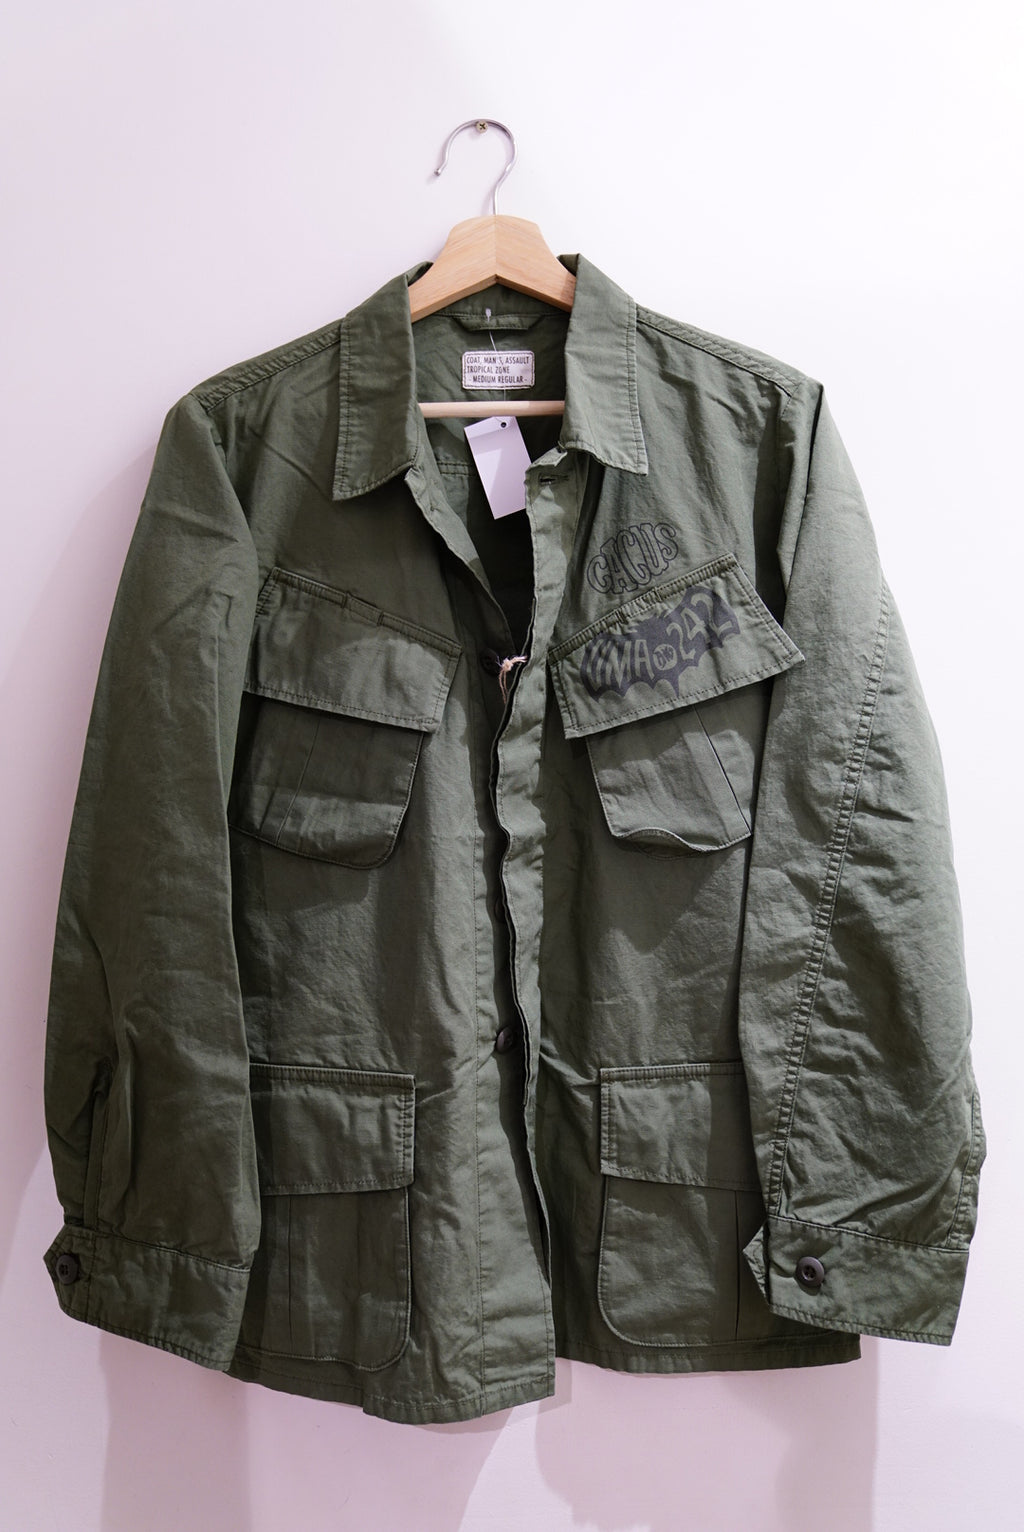 Colimbo hunting goods jungle jacket